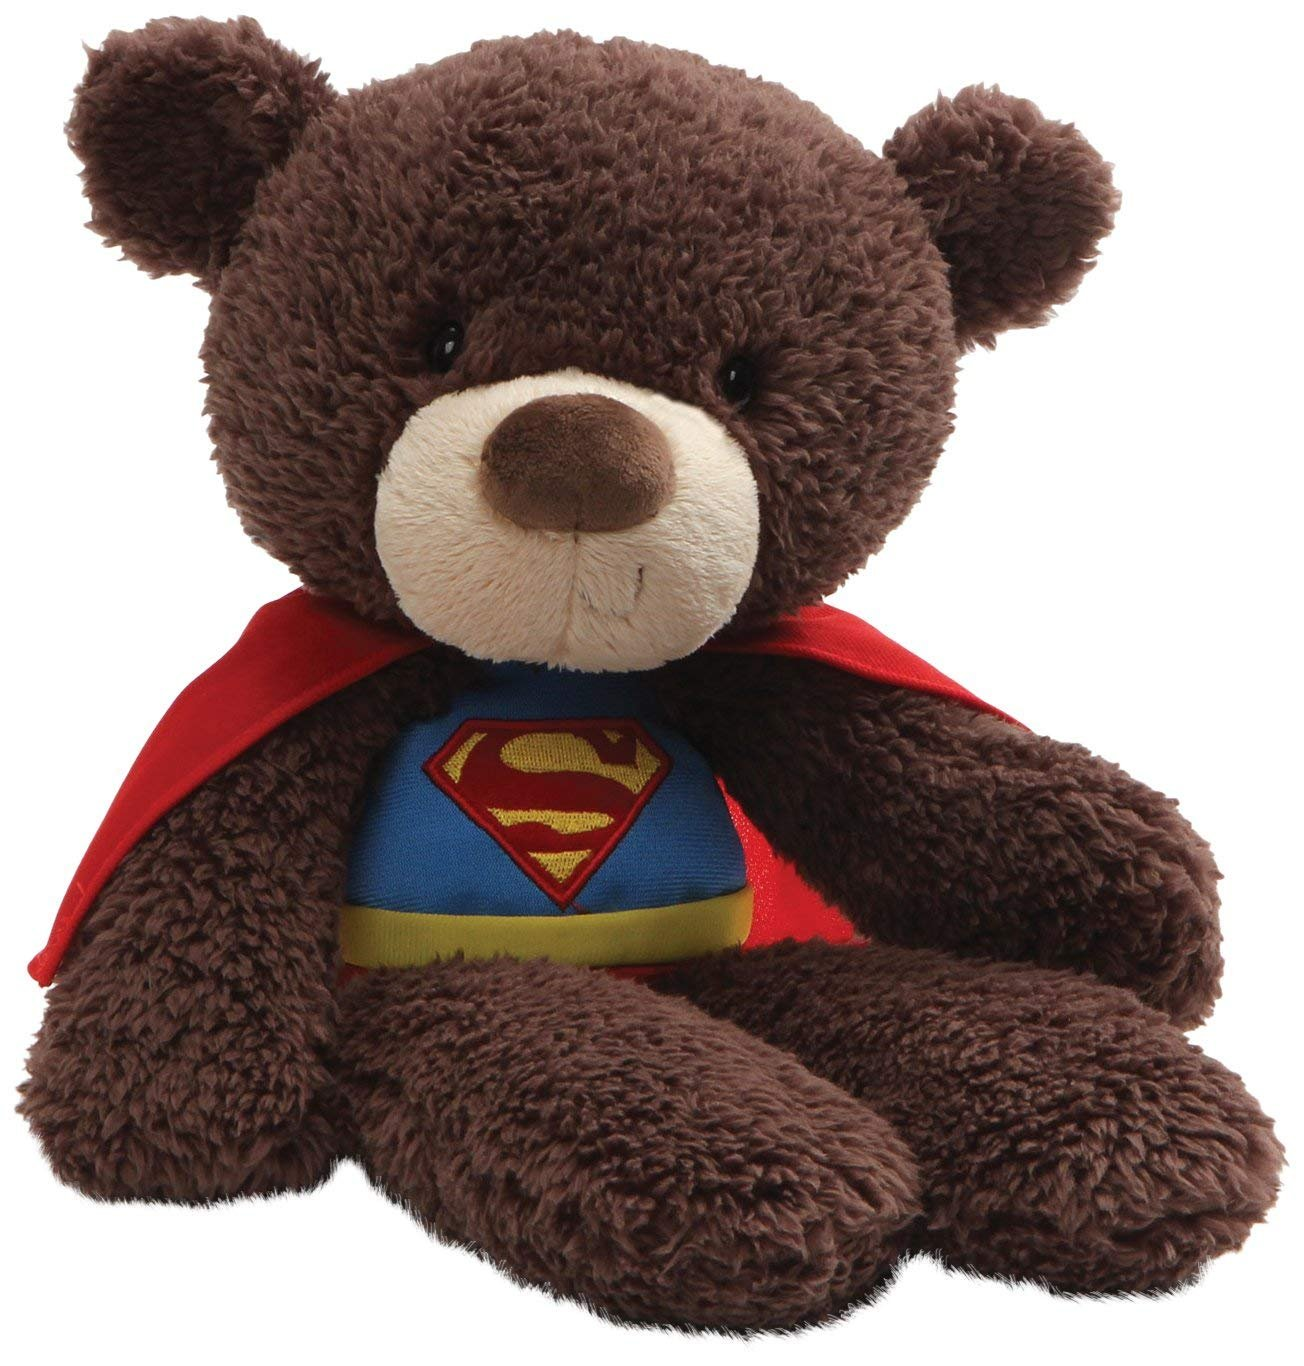 DC Comics Fuzzy 14 Super Man Teddy Bear Plush by Gund